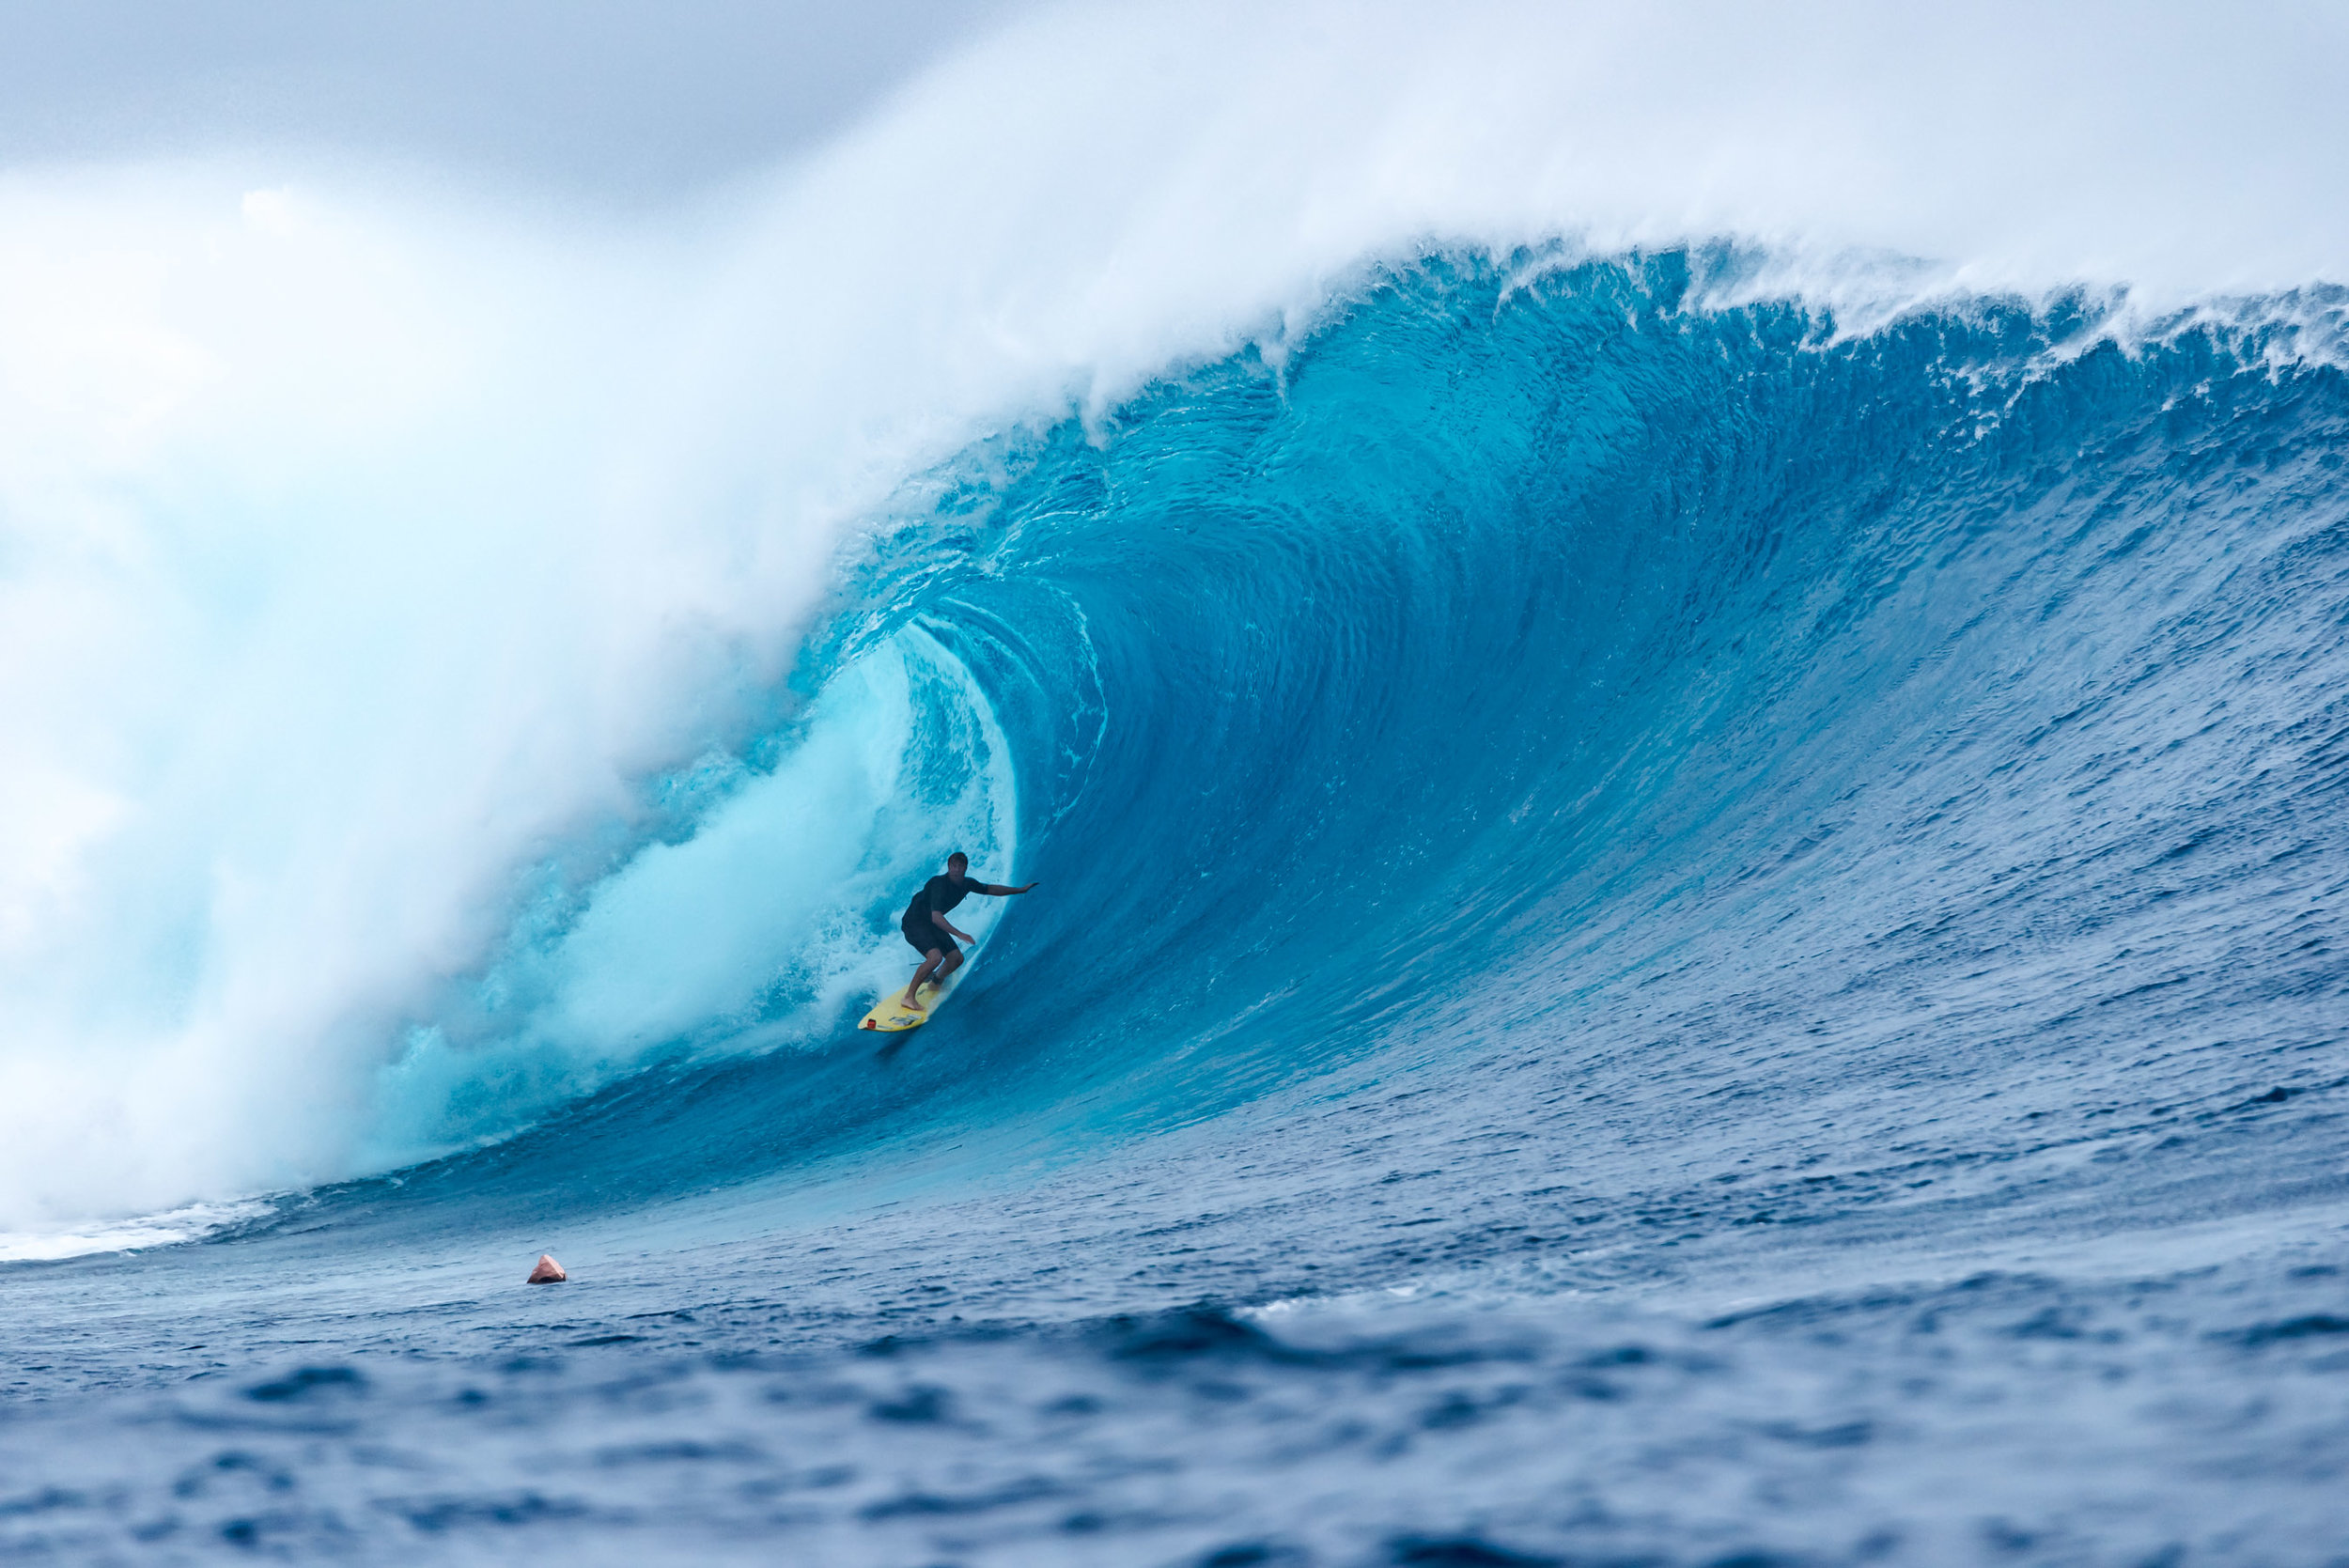 Sequence - How to take amazing surfing photos every time-13.jpg